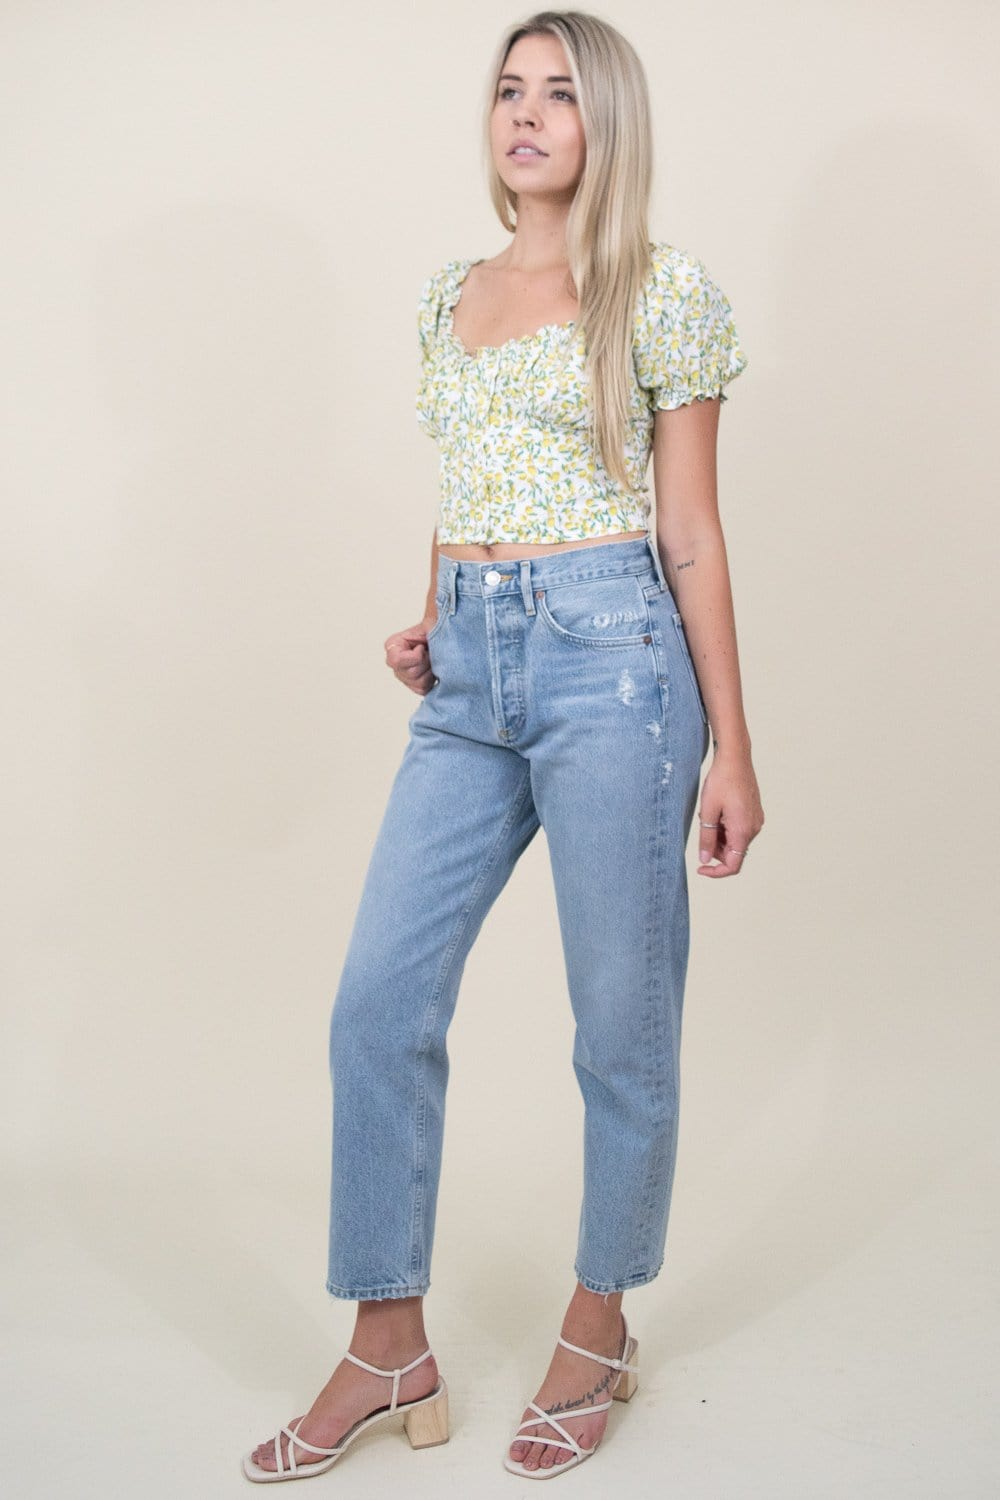 ASTR The Label Rita Top in Lemon Drop